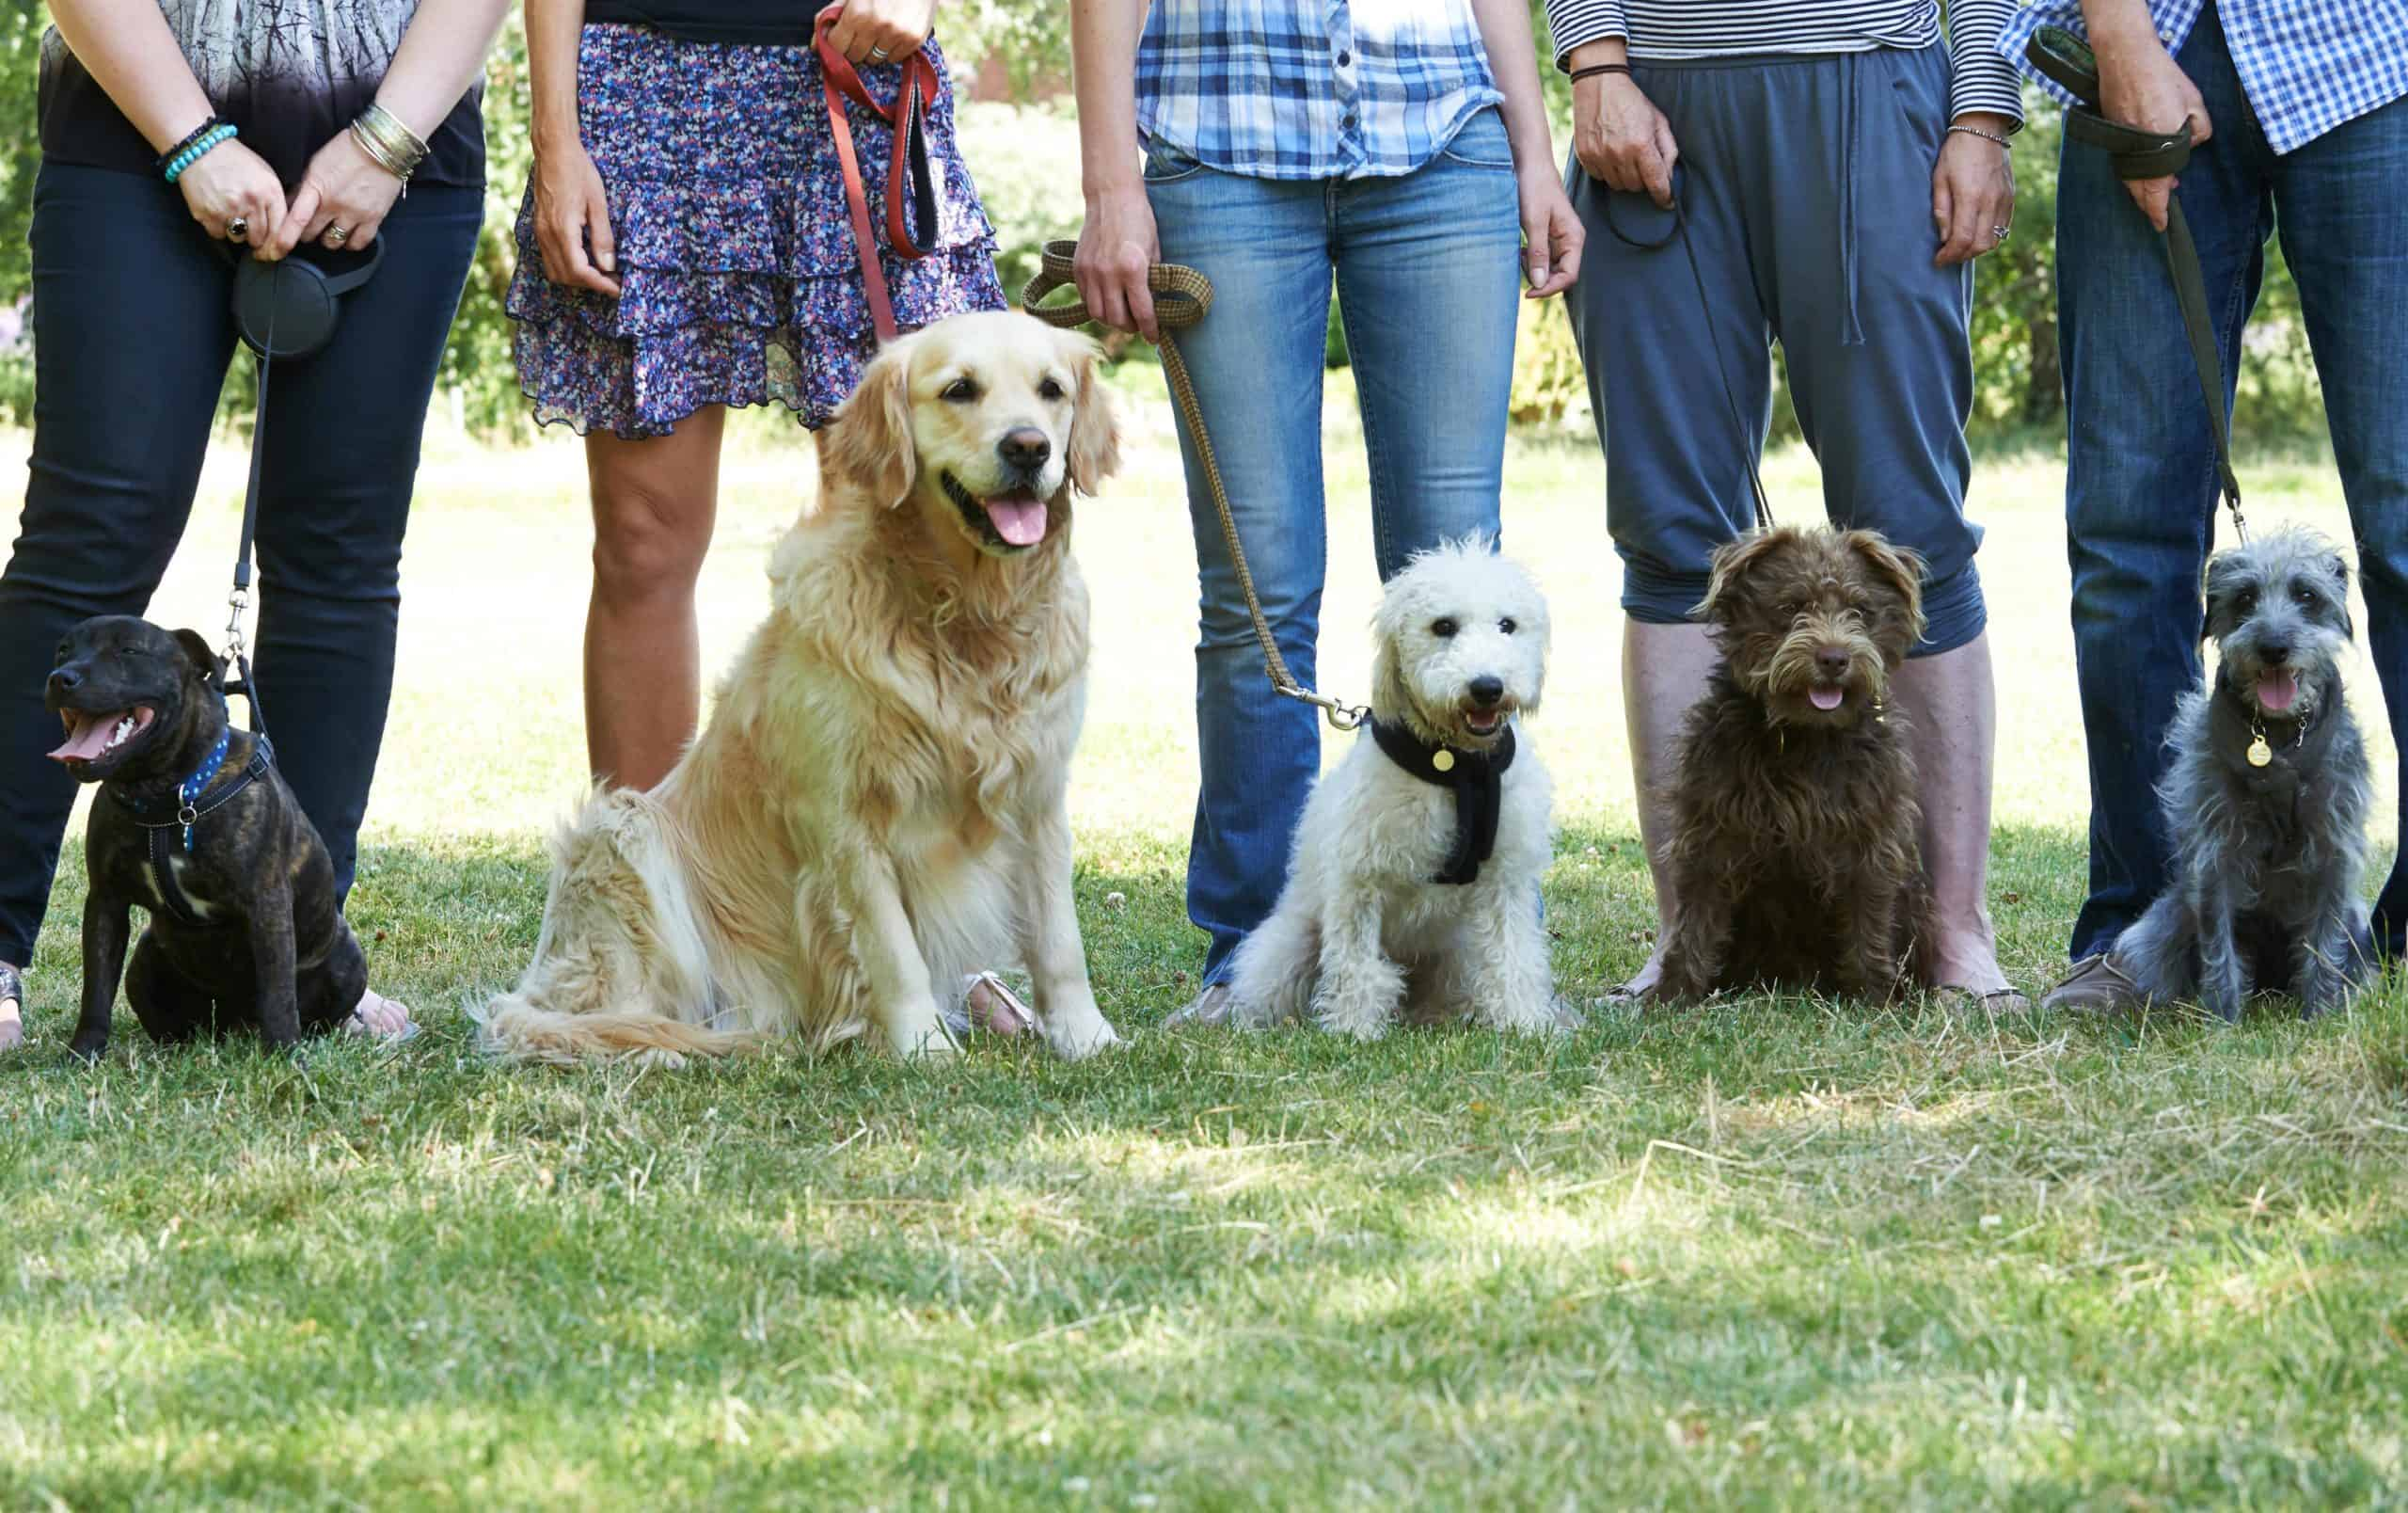 Dog owners pose with their dogs. Joining a local community for dogs is a great way to meet new people.